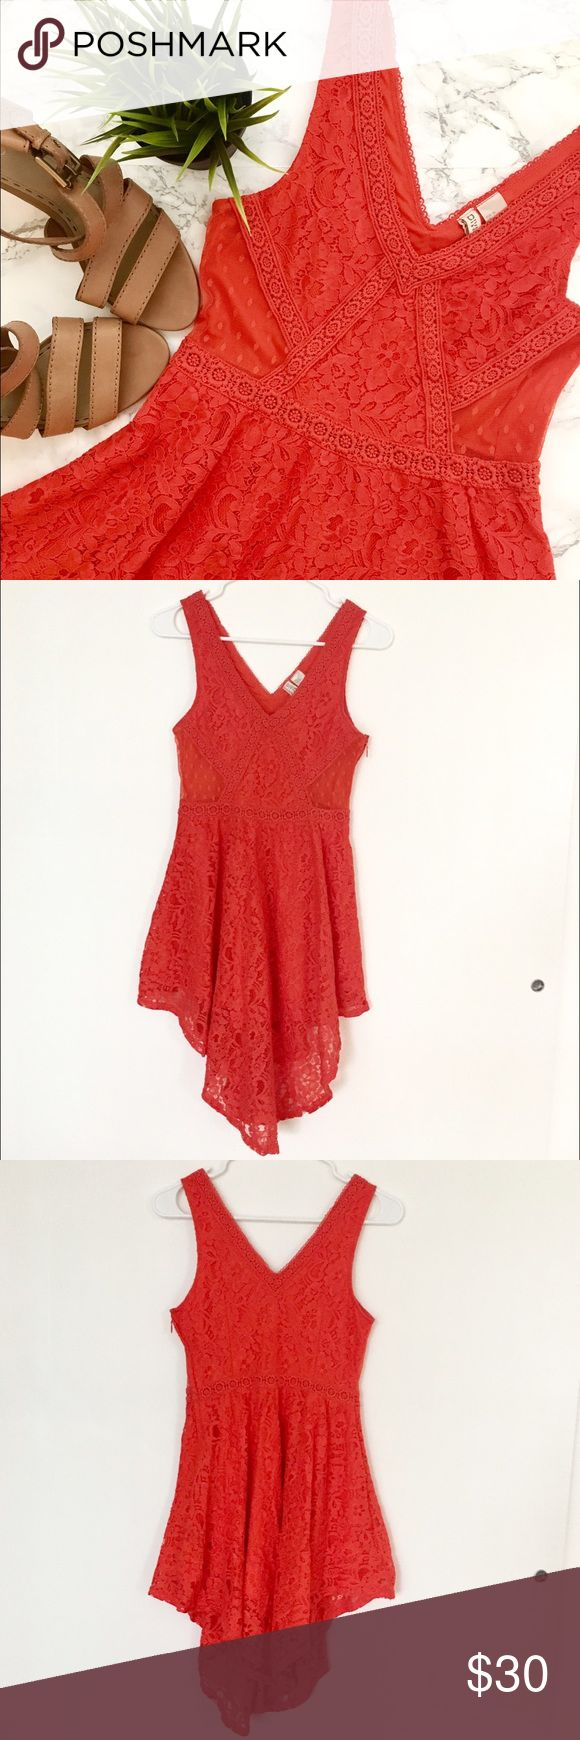 ☀️Lace and Crochet Boho Handkerchief Style Dress EUC no flaws beautiful boho lace and crochet embroidered dress! Size 6. Swingy handkerchief style skirt. Waist-defining style. Has sheer cut outs at the waist. V-neck front and back. Gorgeous bright red-orange color! Great for spring and summer! ☀️ Please feel free to ask any questions before purchasing. I am happy to provide measurements/photos upon request! 😊  ❣️Open to Offers ❣️No Trades or Holds ❣️Smoke Free Home ❣️Bundle Discounts! 15%…